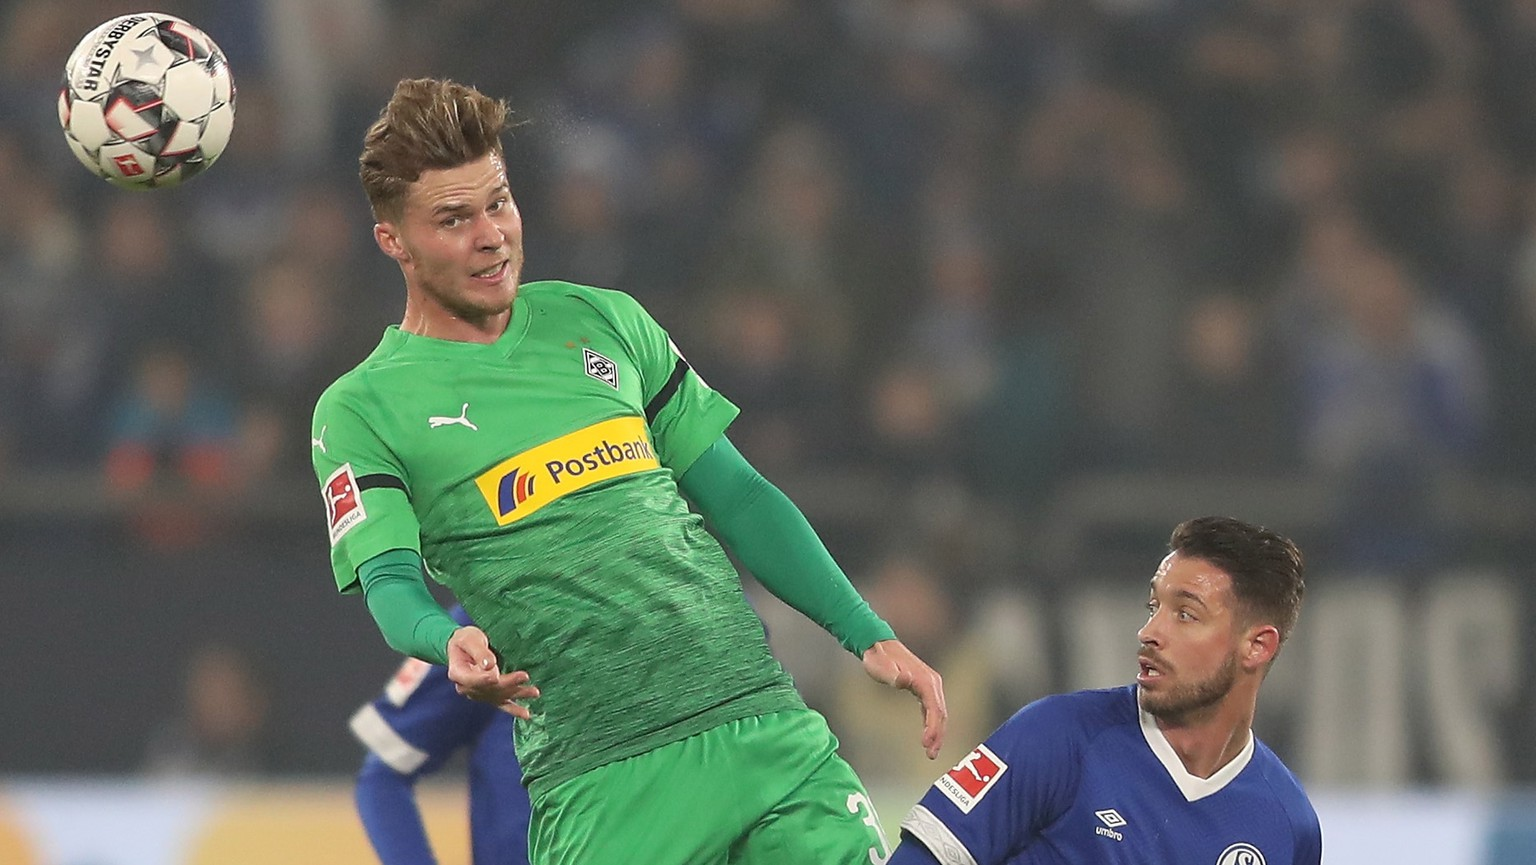 epa07339133 Moenchengladbach's Nico Elvedi (L) in action against Schalke's Mark Uth during the German Bundesliga soccer match between FC Schalke 04 and Borussia Moenchengladbach in Gelsenkirchen, Germany, 02 February 2019.  EPA/FRIEDEMANN VOGEL CONDITIONS - ATTENTION: The DFL regulations prohibit any use of photographs as image sequences and/or quasi-video.